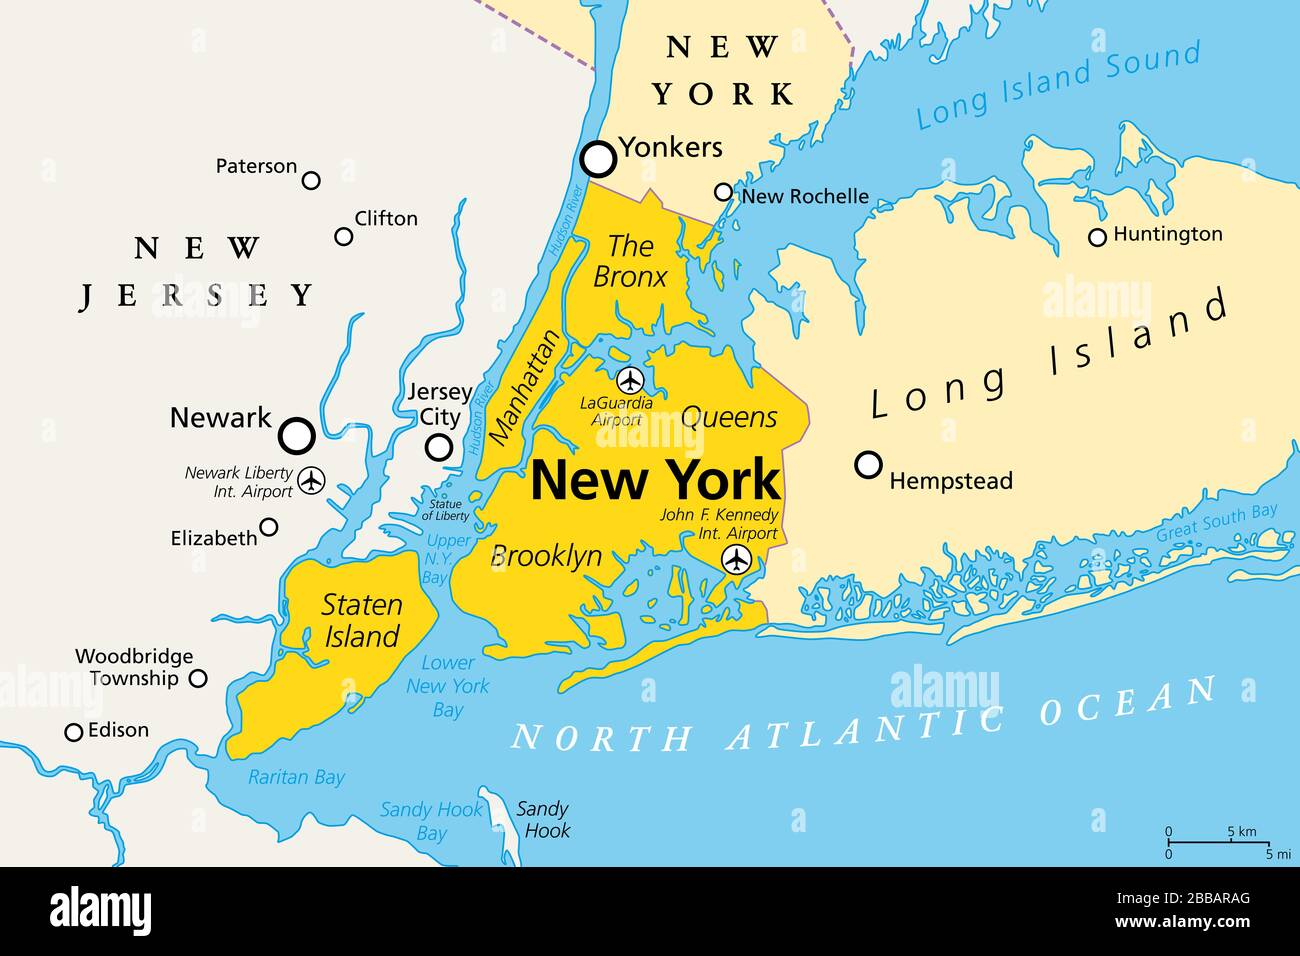 New York City Political Map Most Populous City In United States Located In The State Of New York Manhattan Bronx Queens Brooklyn Staten Island Stock Photo Alamy